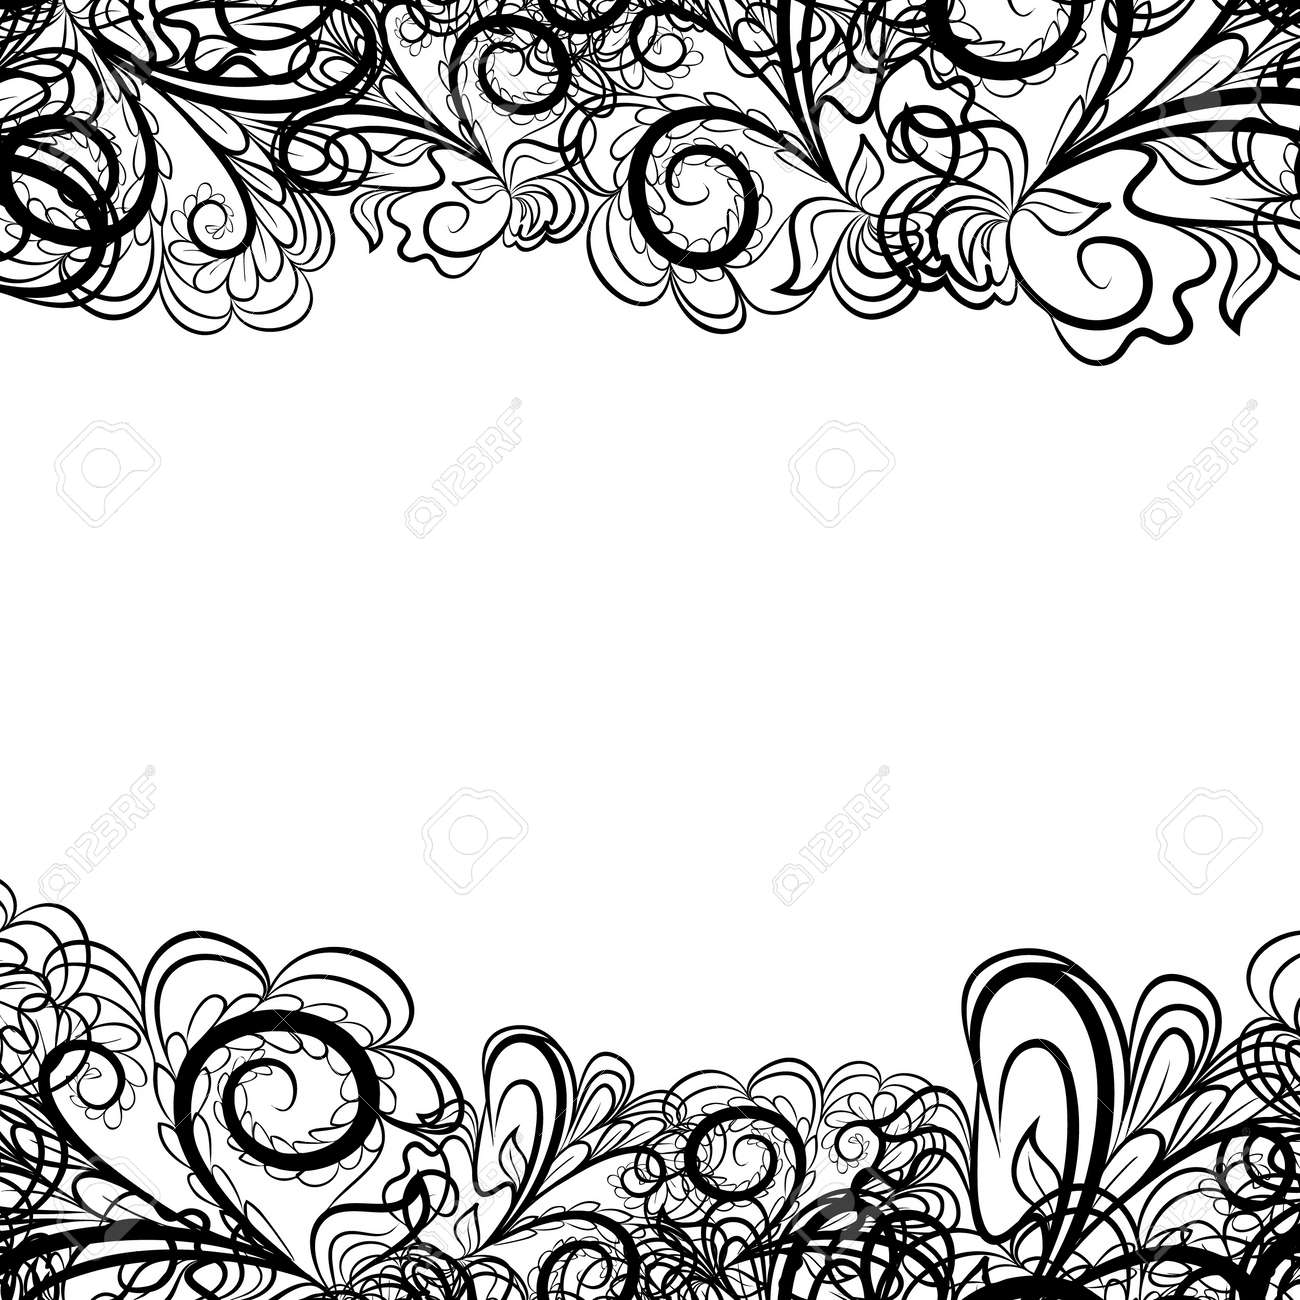 abstract black border like as lace against the white background rh 123rf com black lace border vector free lace border vector png